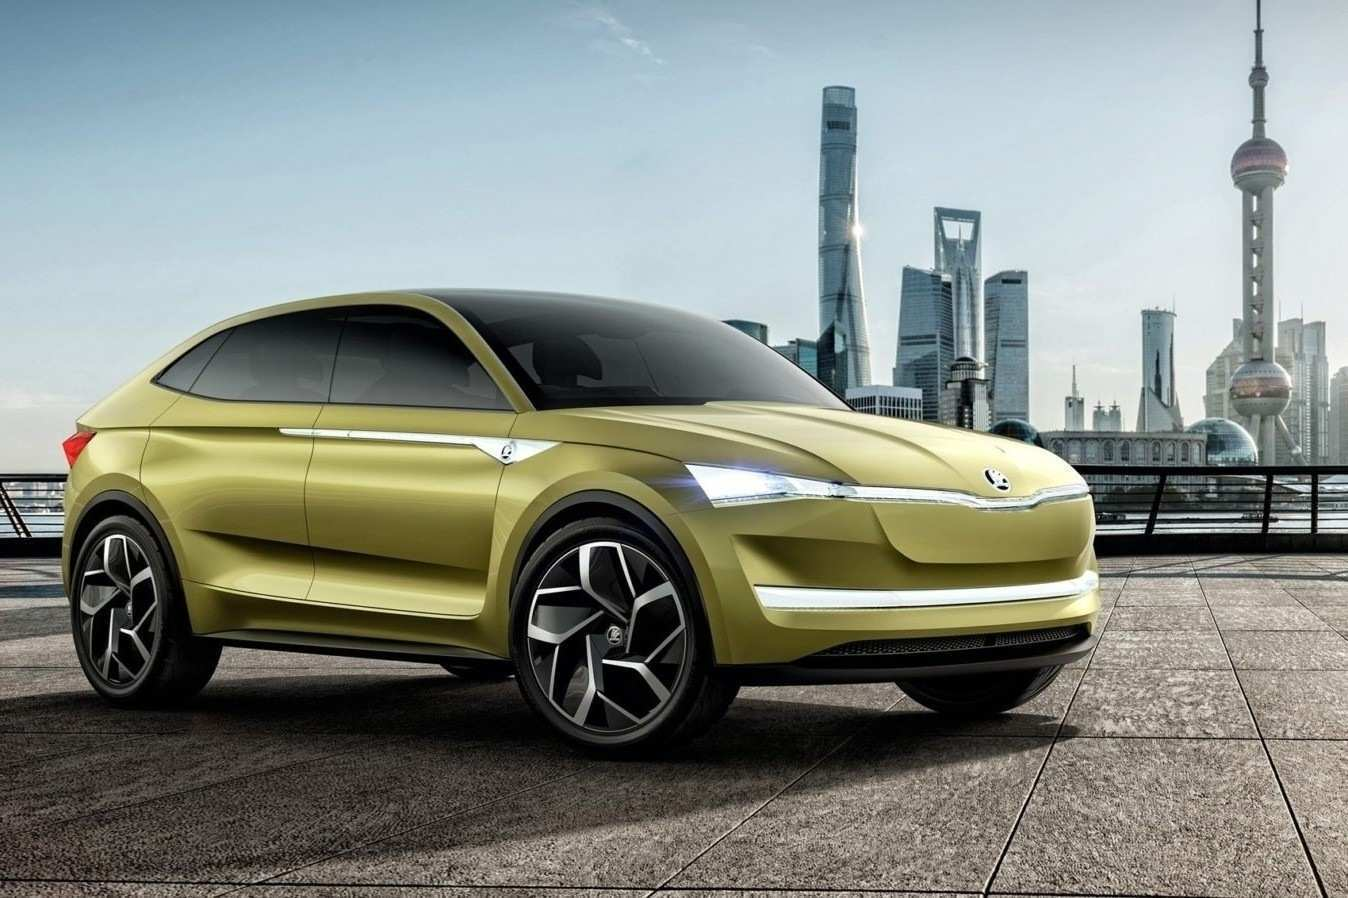 71 New 2020 Skoda Snowman Full Preview Images